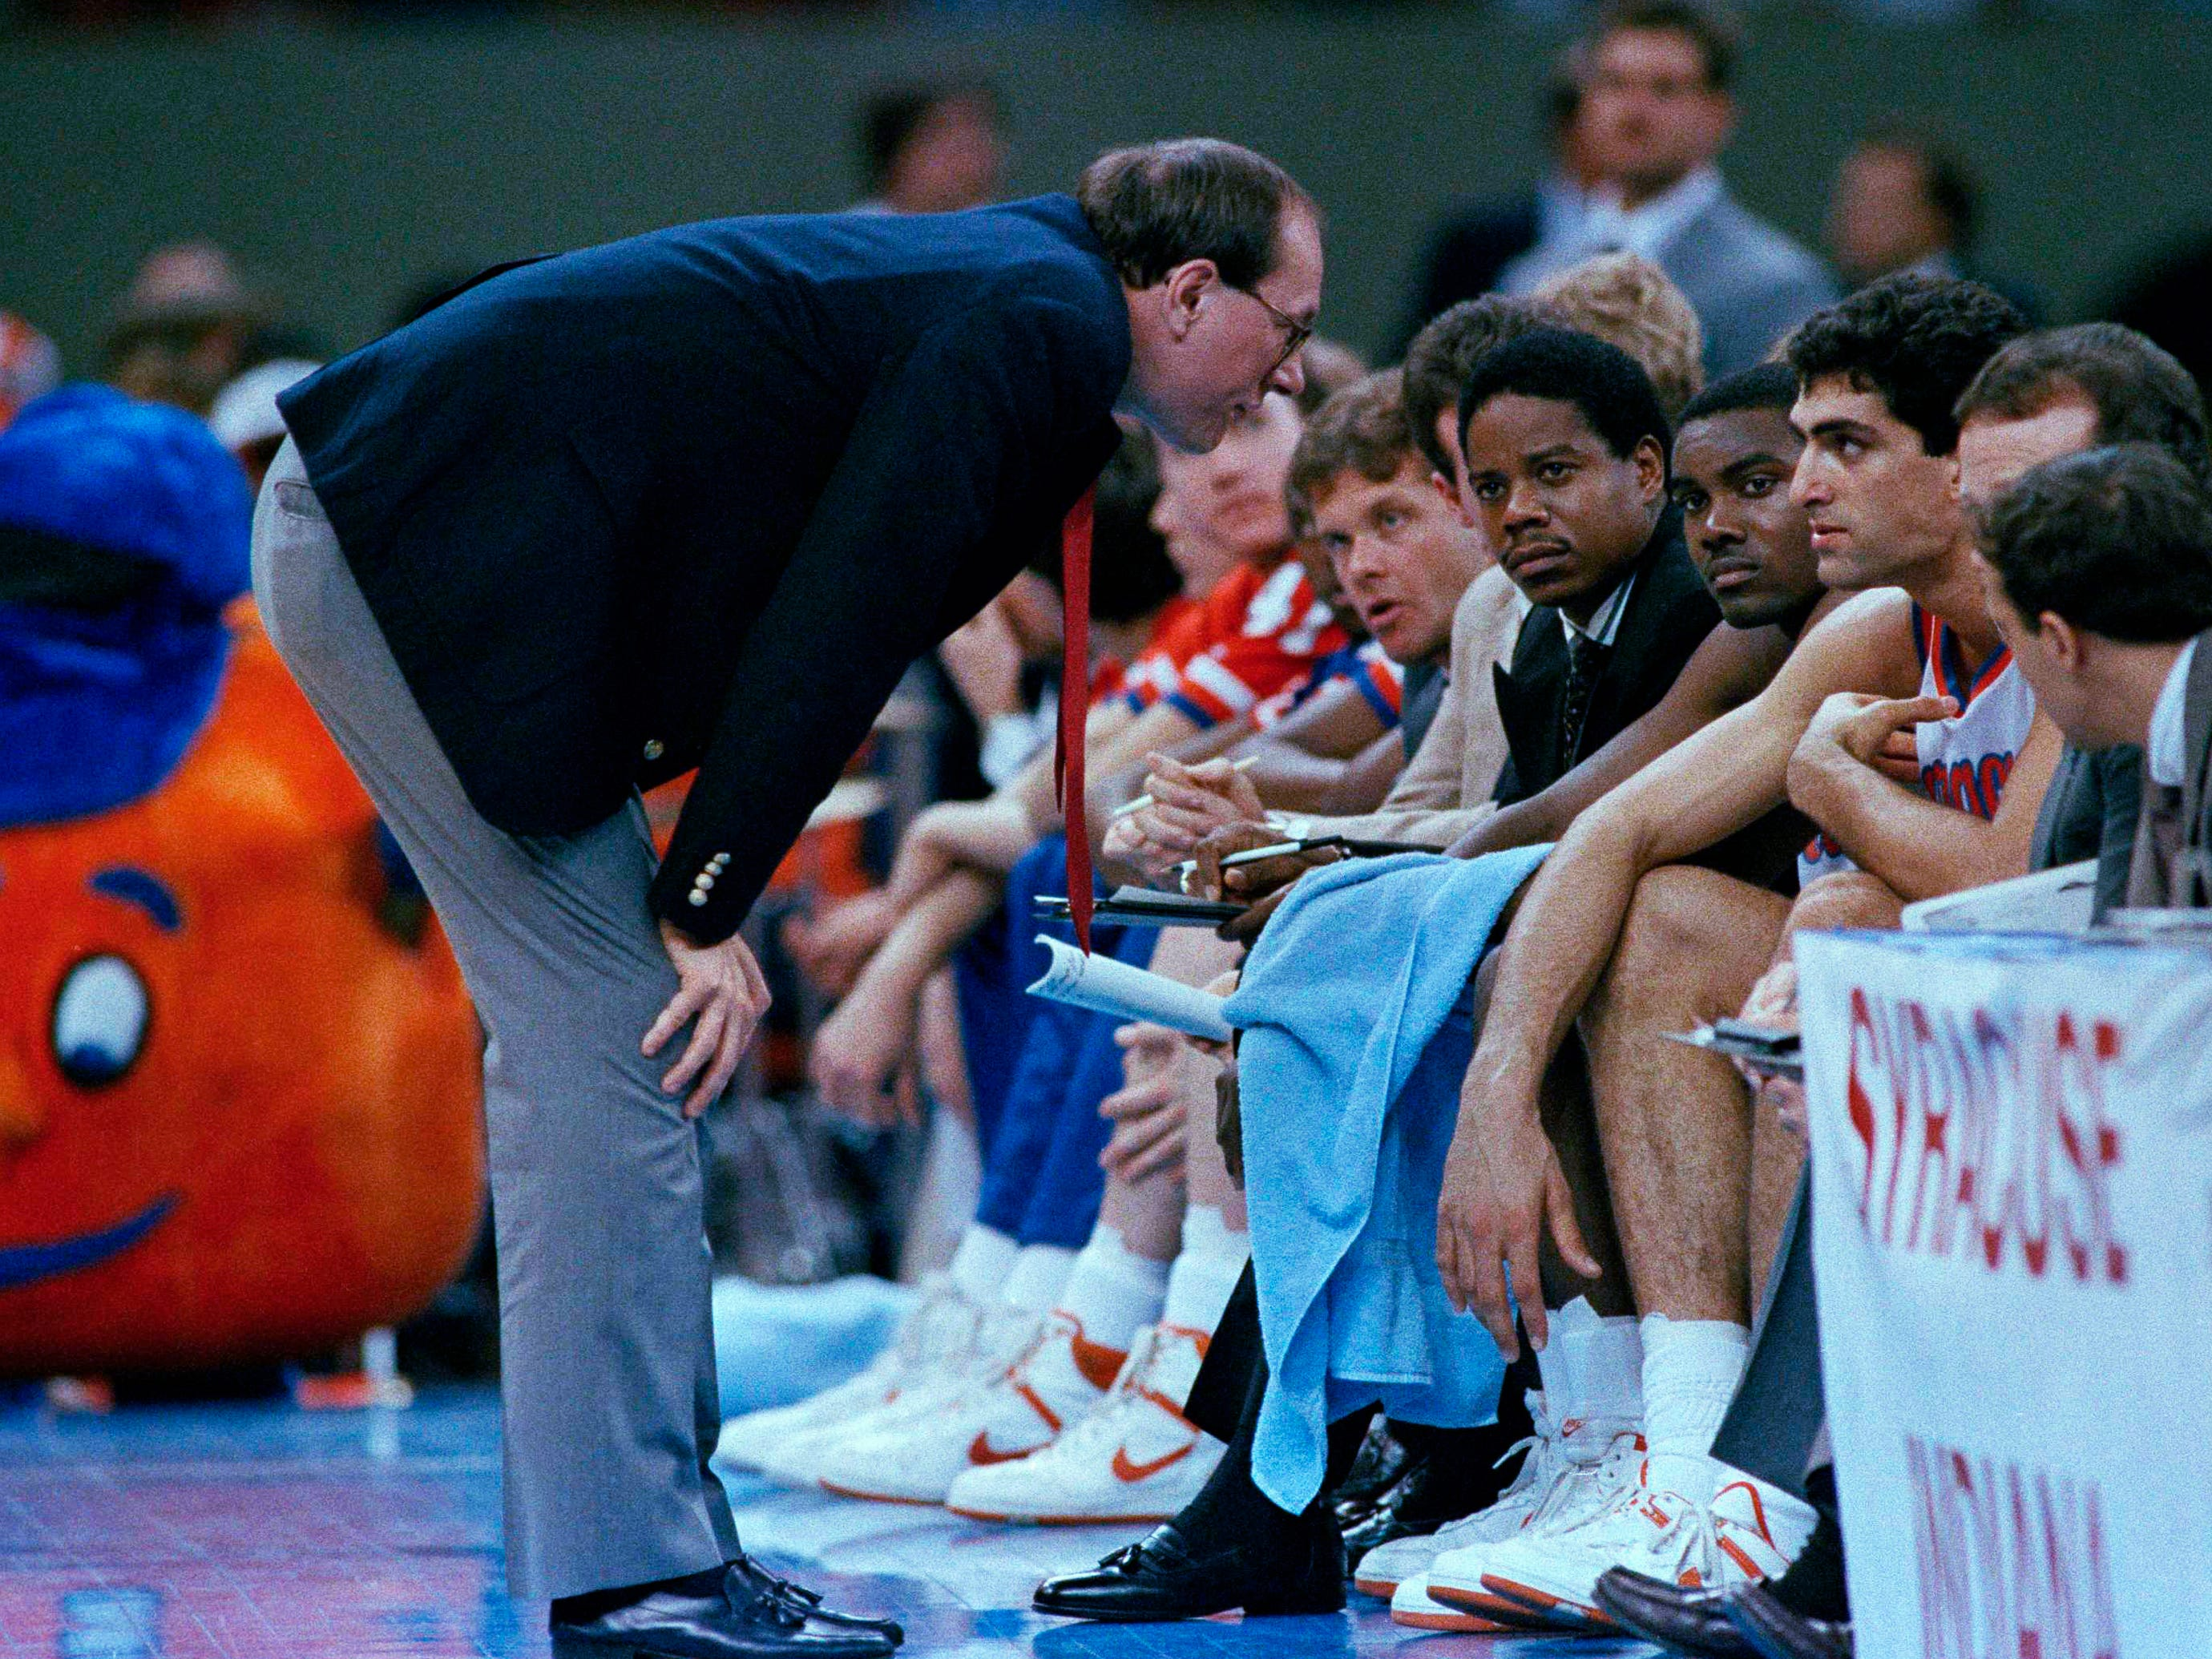 1987: Syracuse coach Jim Boeheim (left) talks to player Rony Seikaly (right) as he sits on the bench during their game against Providence in New Orleans, Saturday, March 28, 1987.